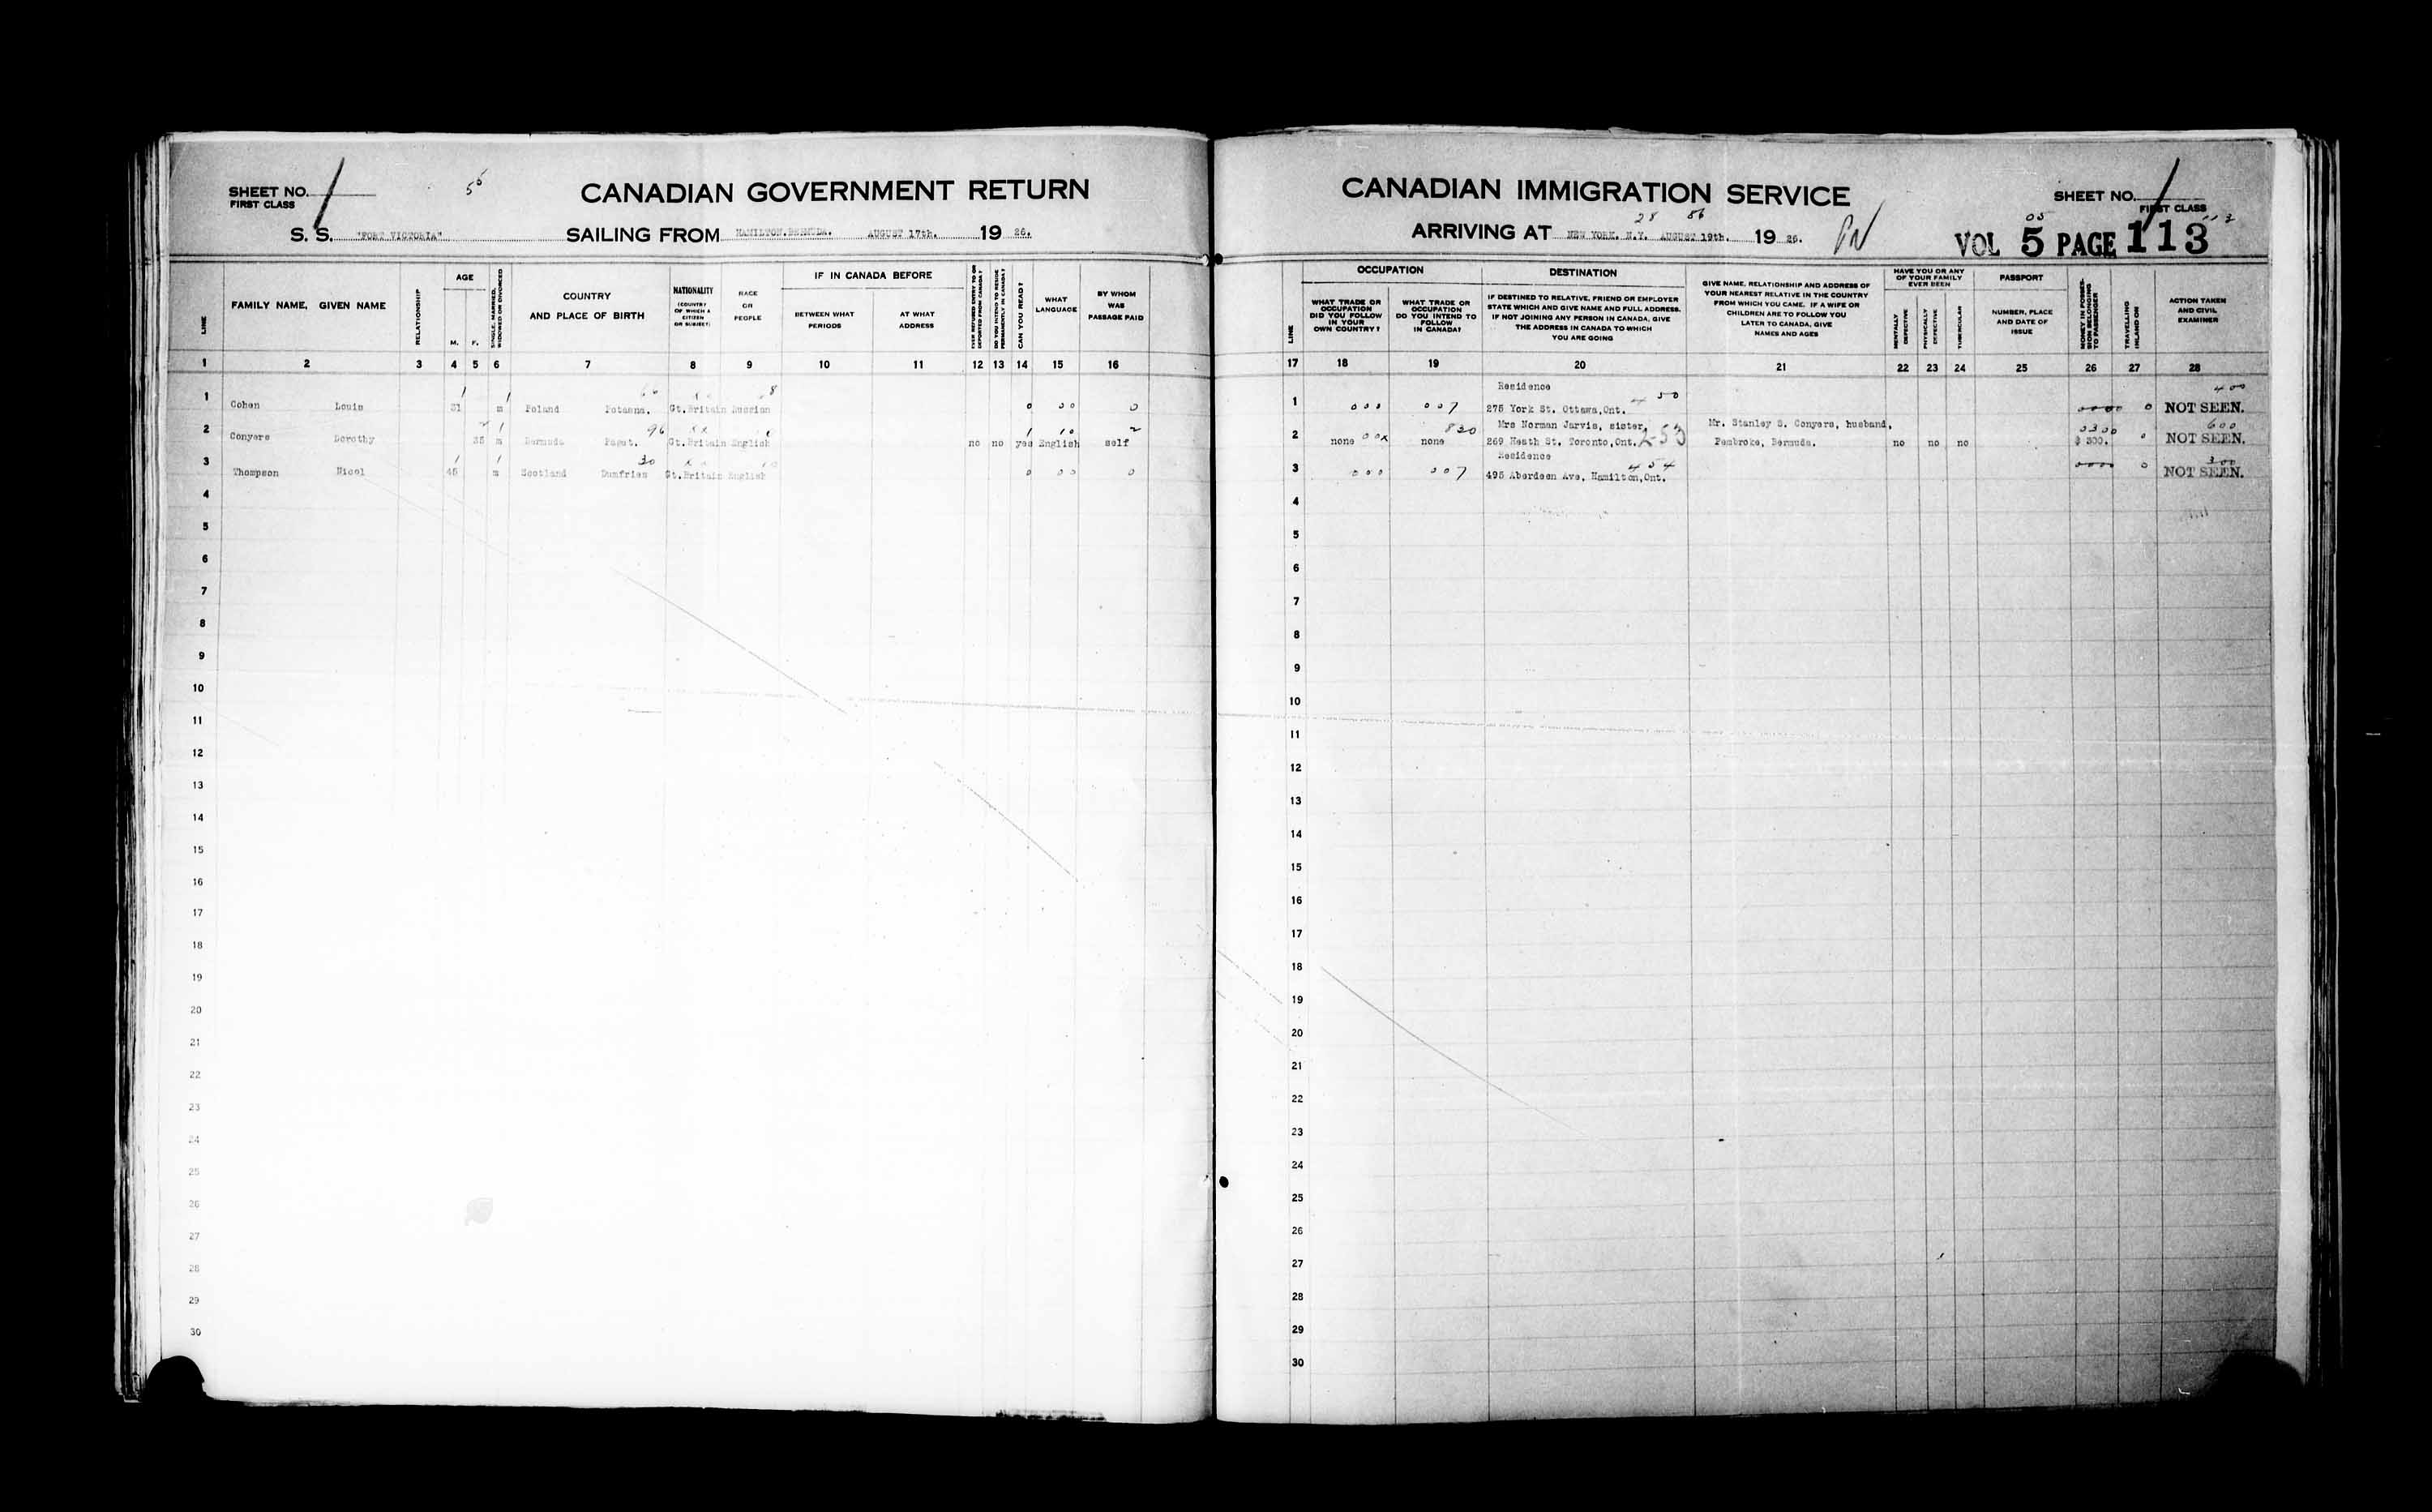 Title: Passenger Lists: New York (1925-1935) - Mikan Number: 161343 - Microform: t-14928